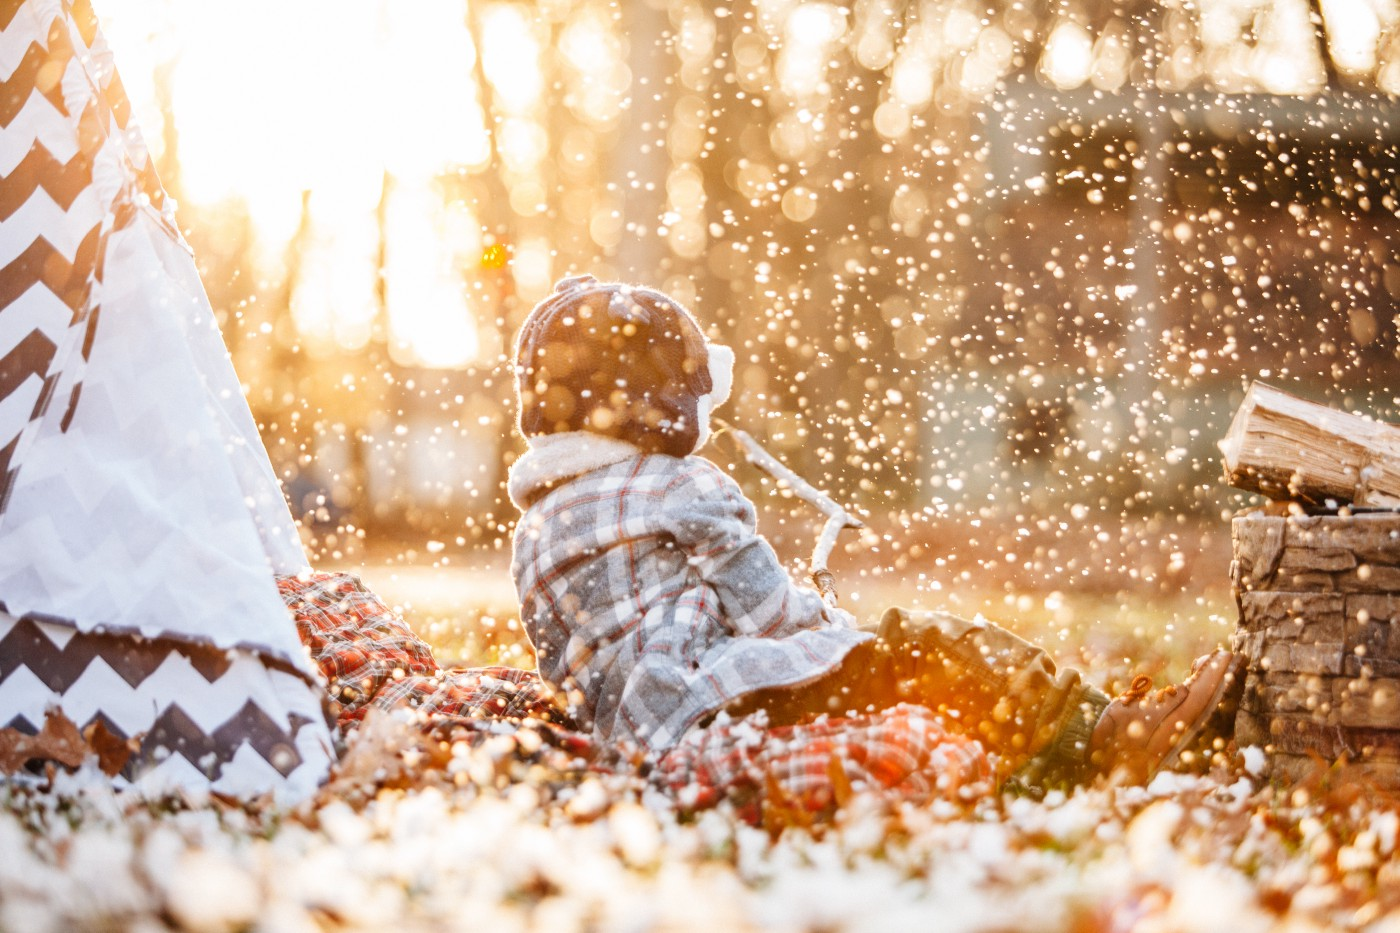 A child outside near a play tent, in golden light with glittering snow all around